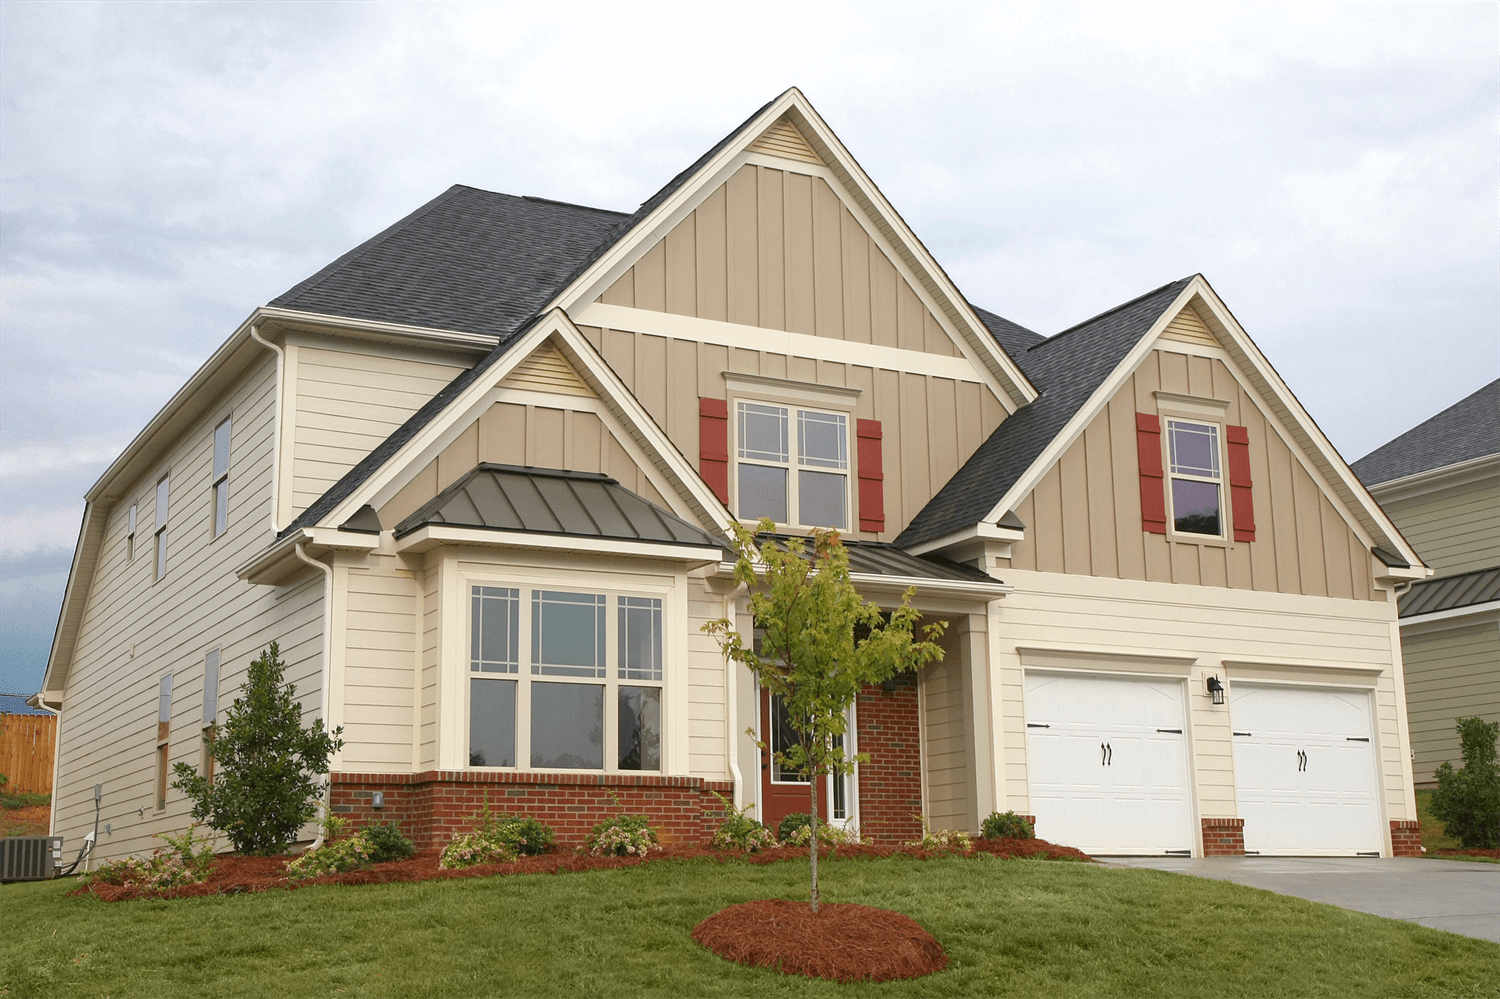 Siding products premier home commercial siding for Siding designs